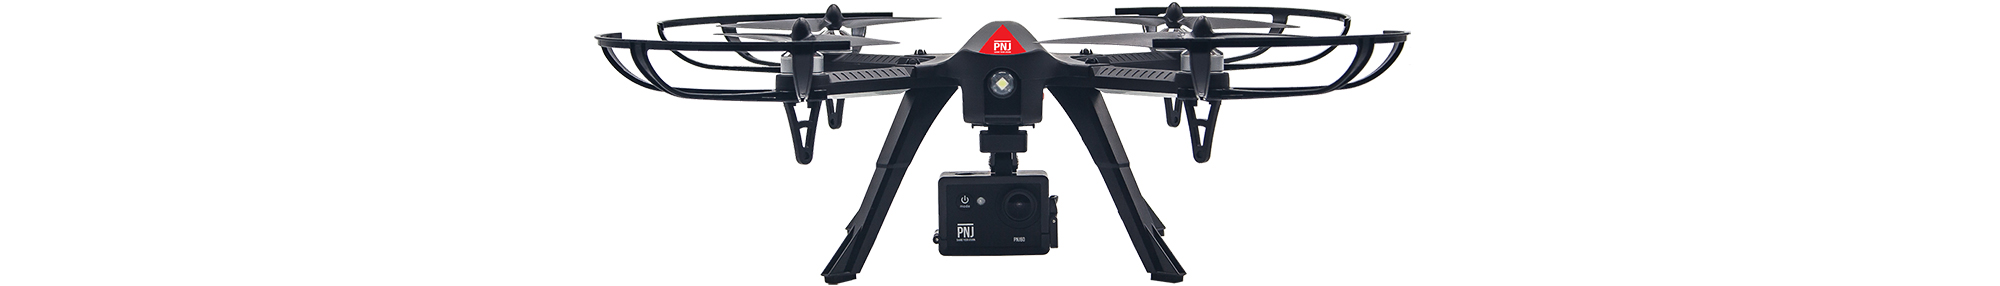 R-Traveler drone with its Full HD action camera